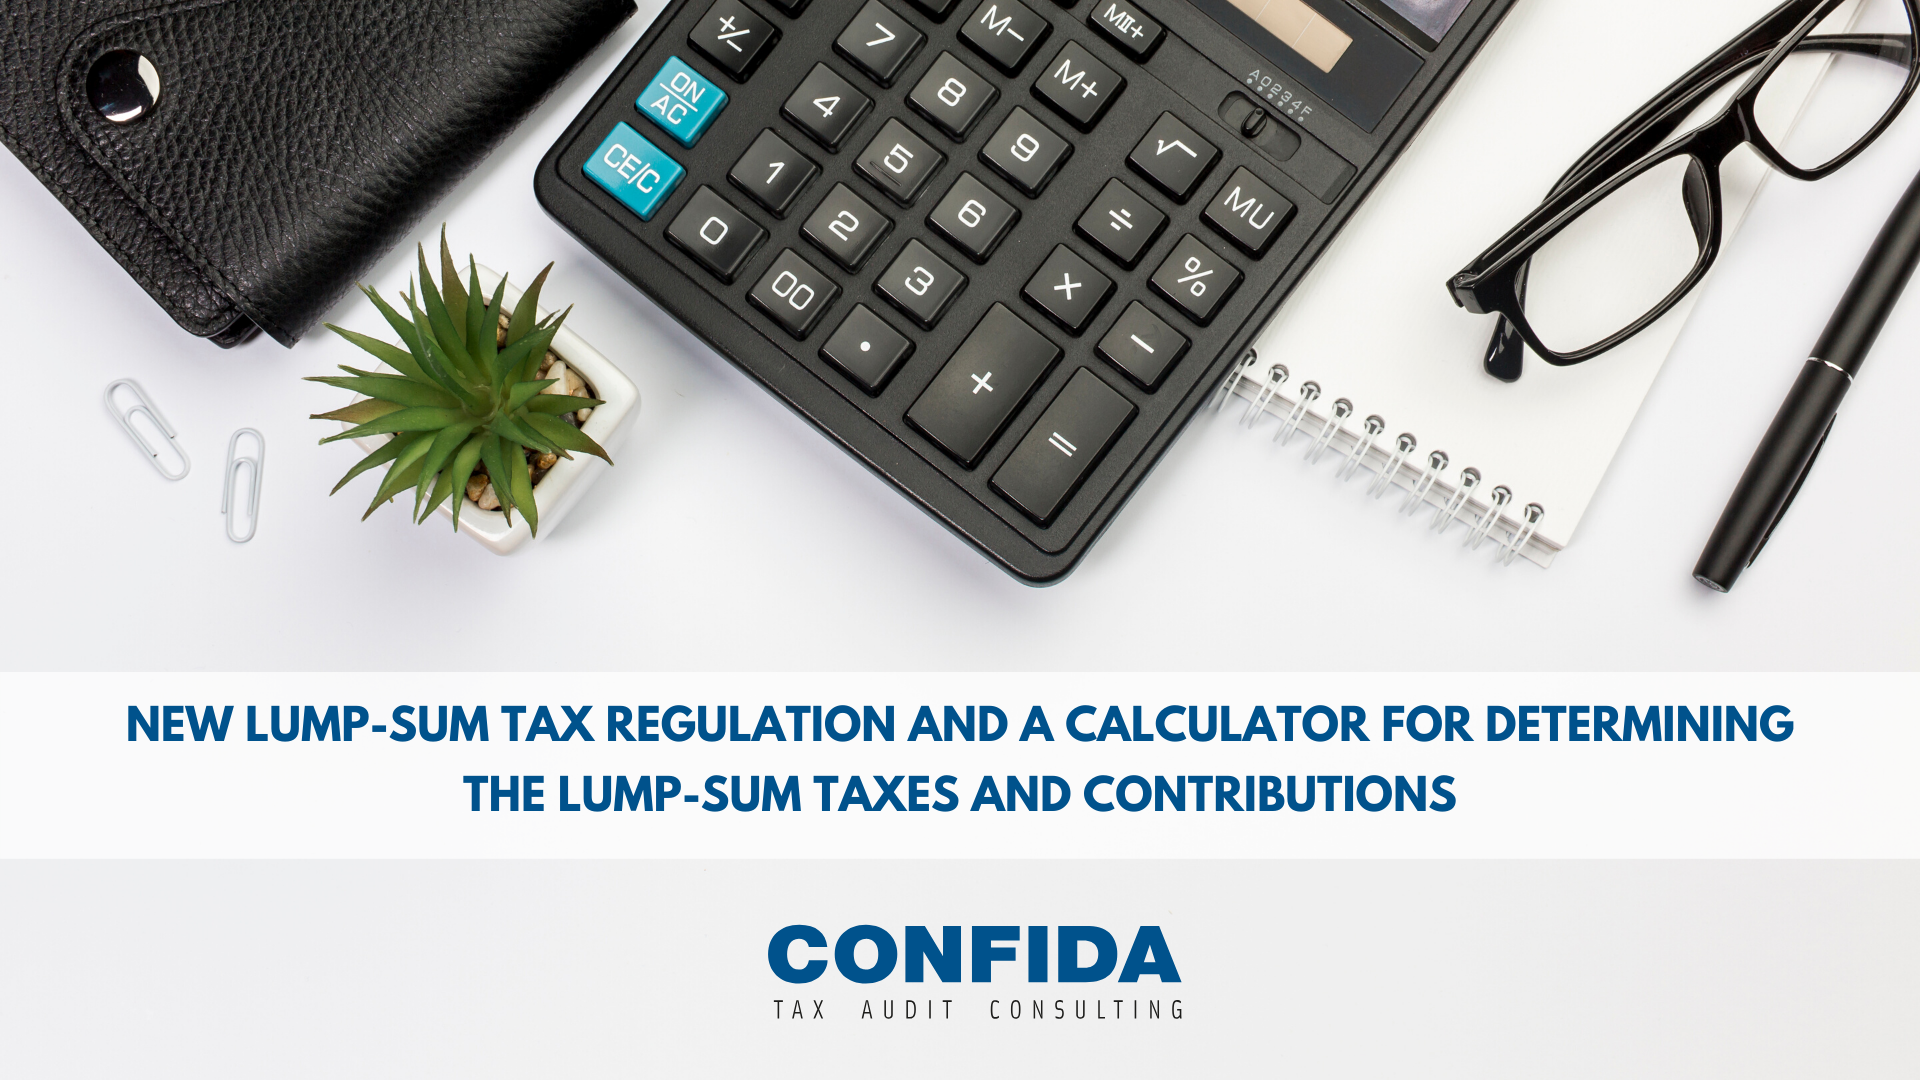 lump-sum tax regulation